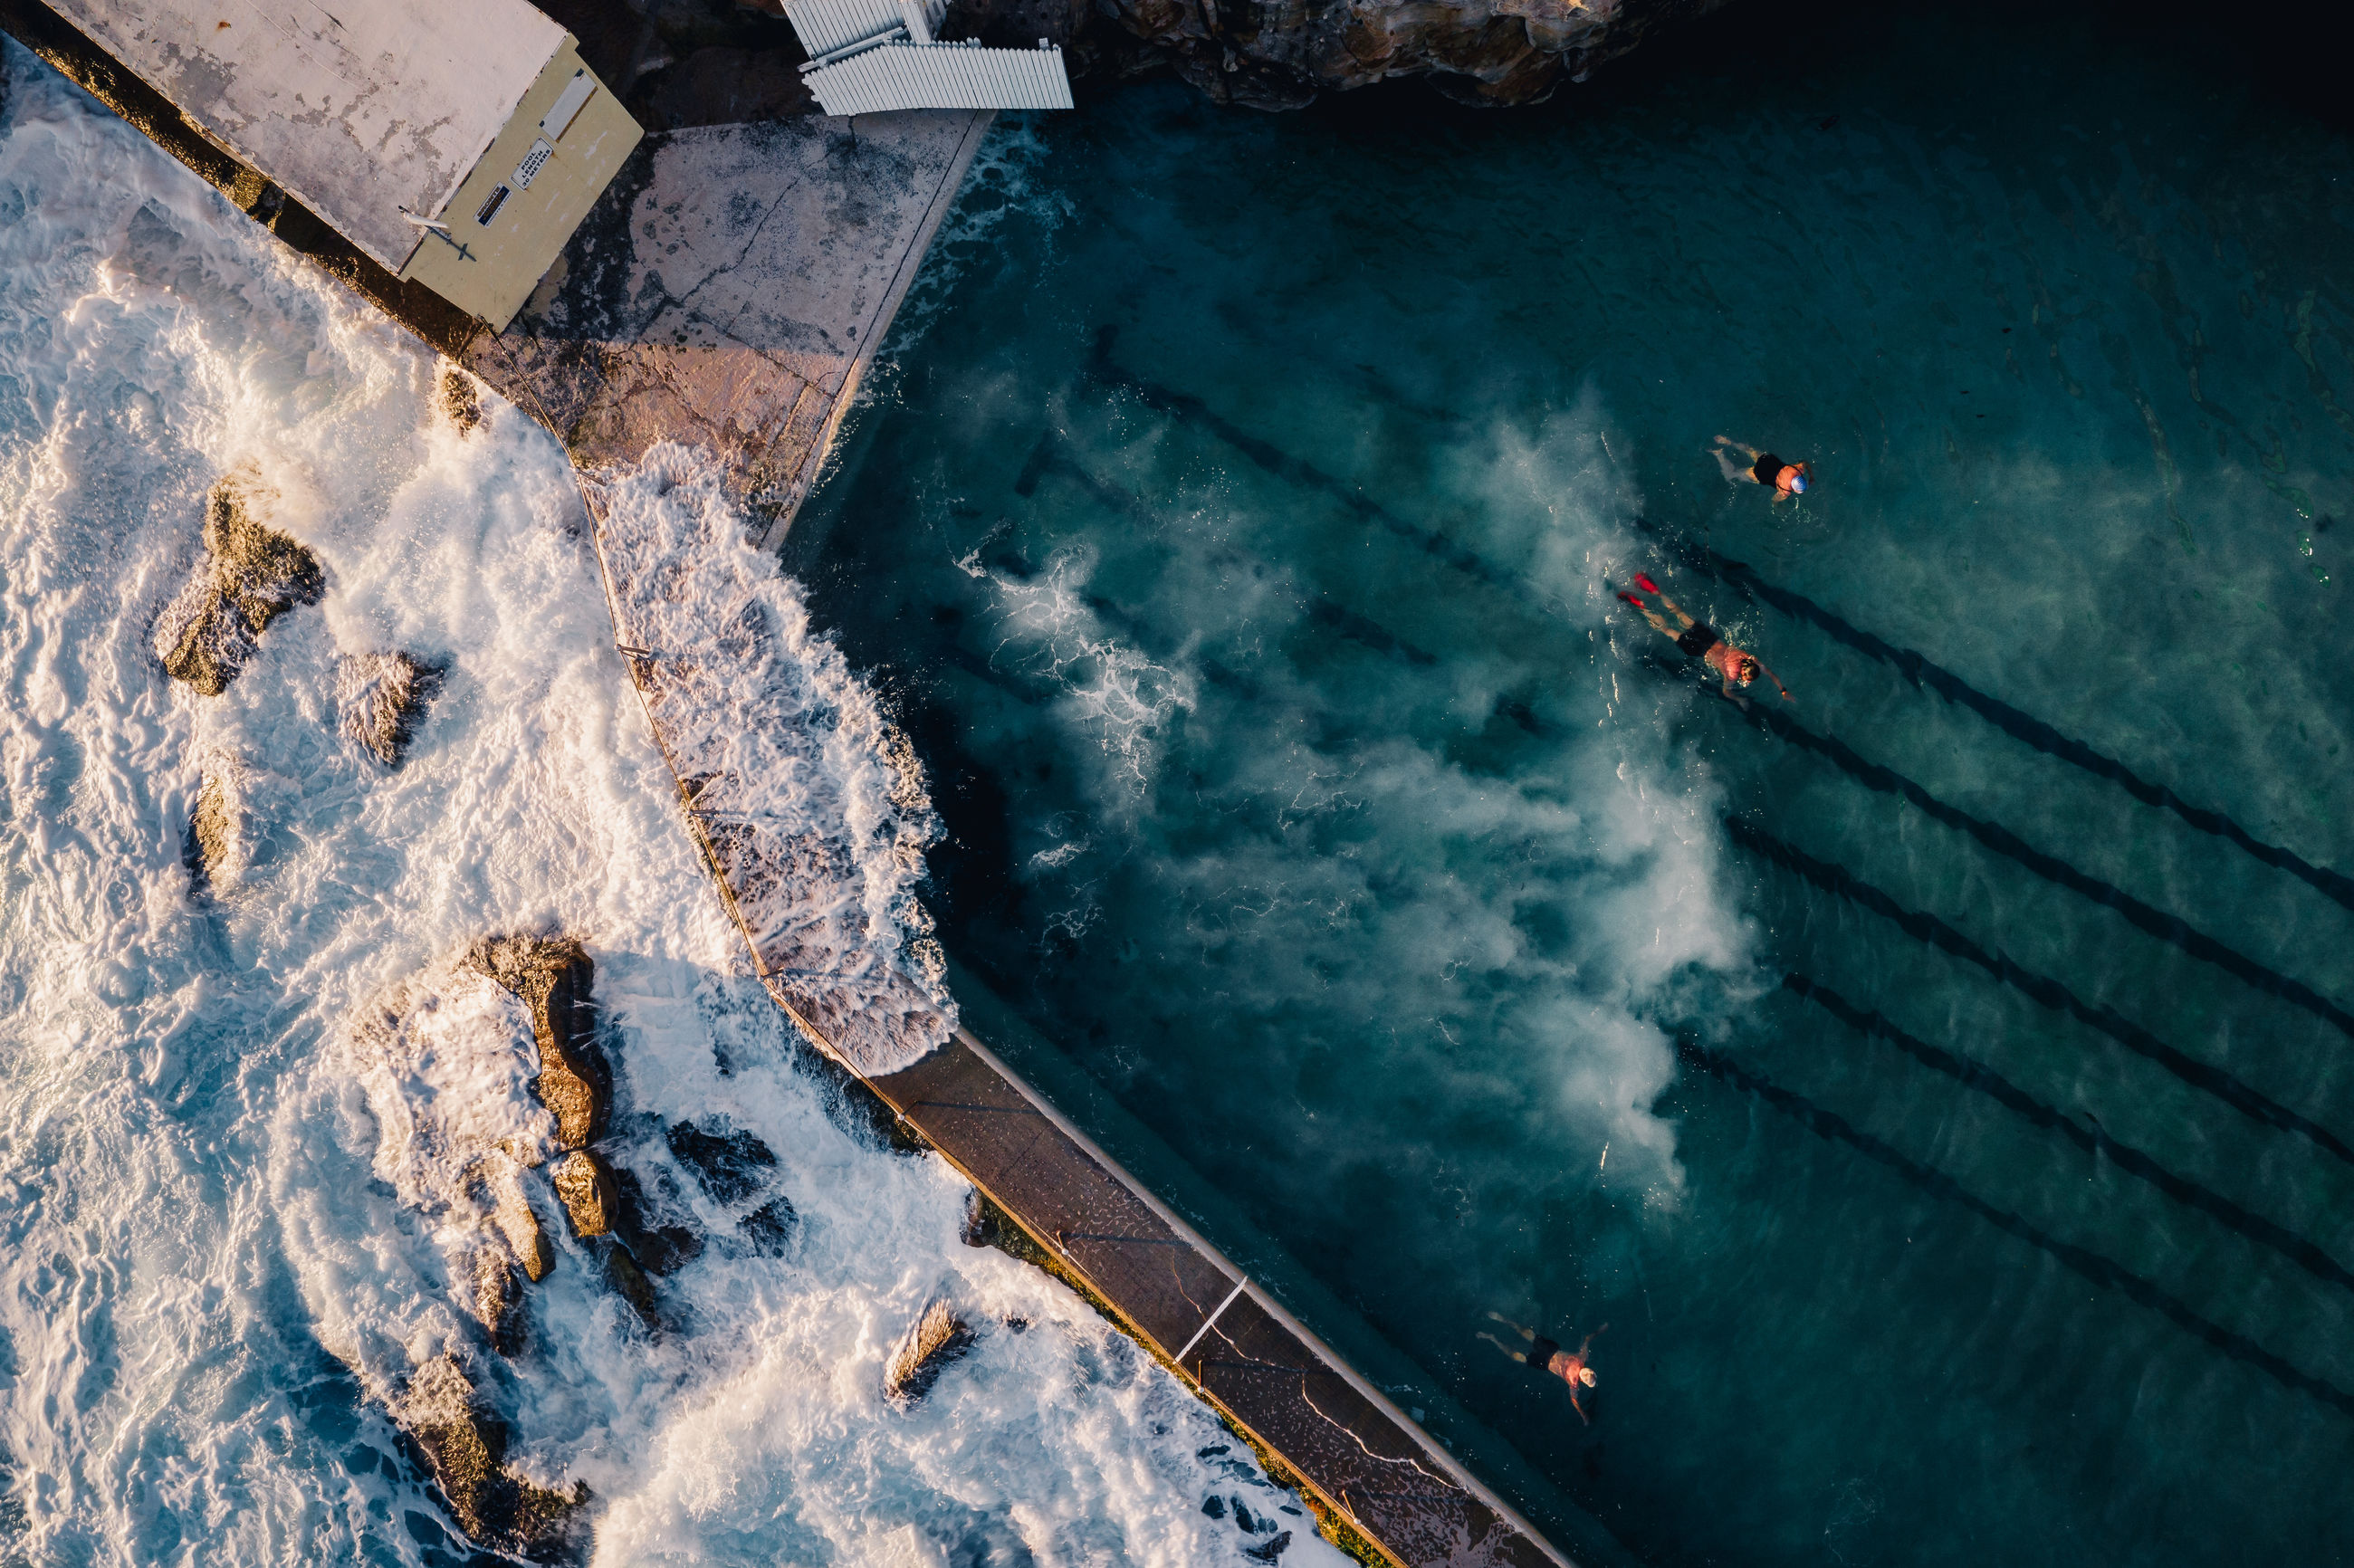 water, high angle view, nature, day, transportation, nautical vessel, sport, aerial view, travel, mode of transportation, sea, beauty in nature, outdoors, travel destinations, land, people, directly above, winter, swimming pool